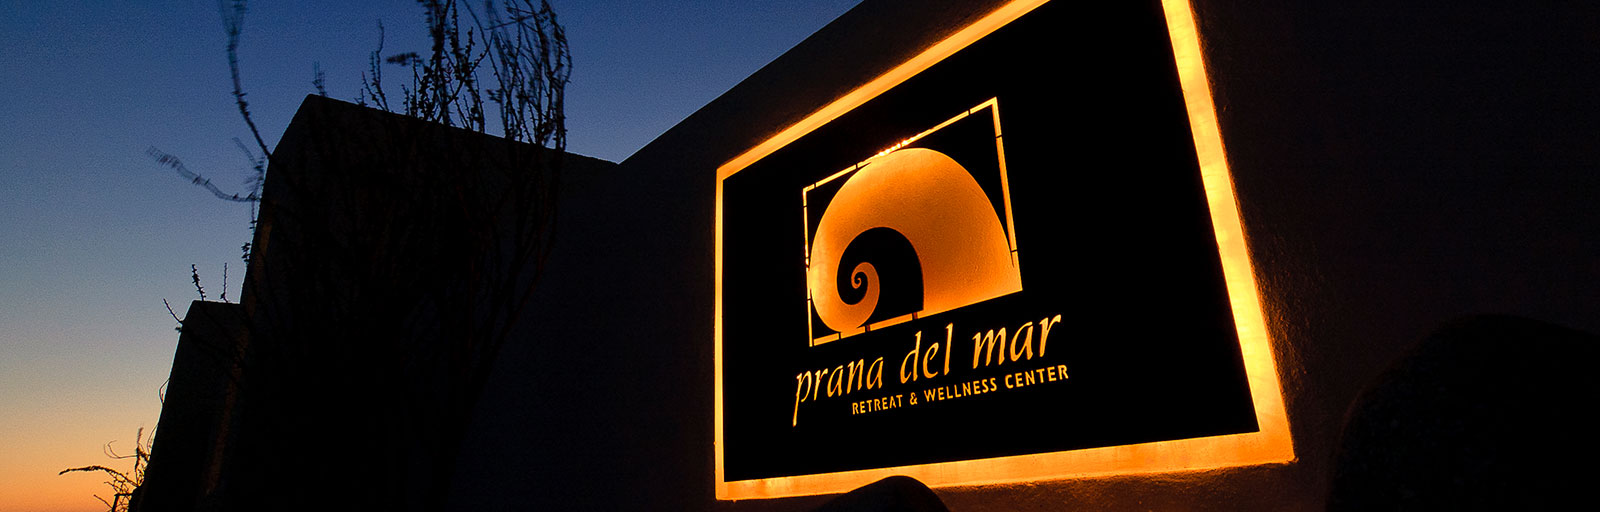 Yoga & Wellness Retreats in Mexico: Welcome to Prana del Mar